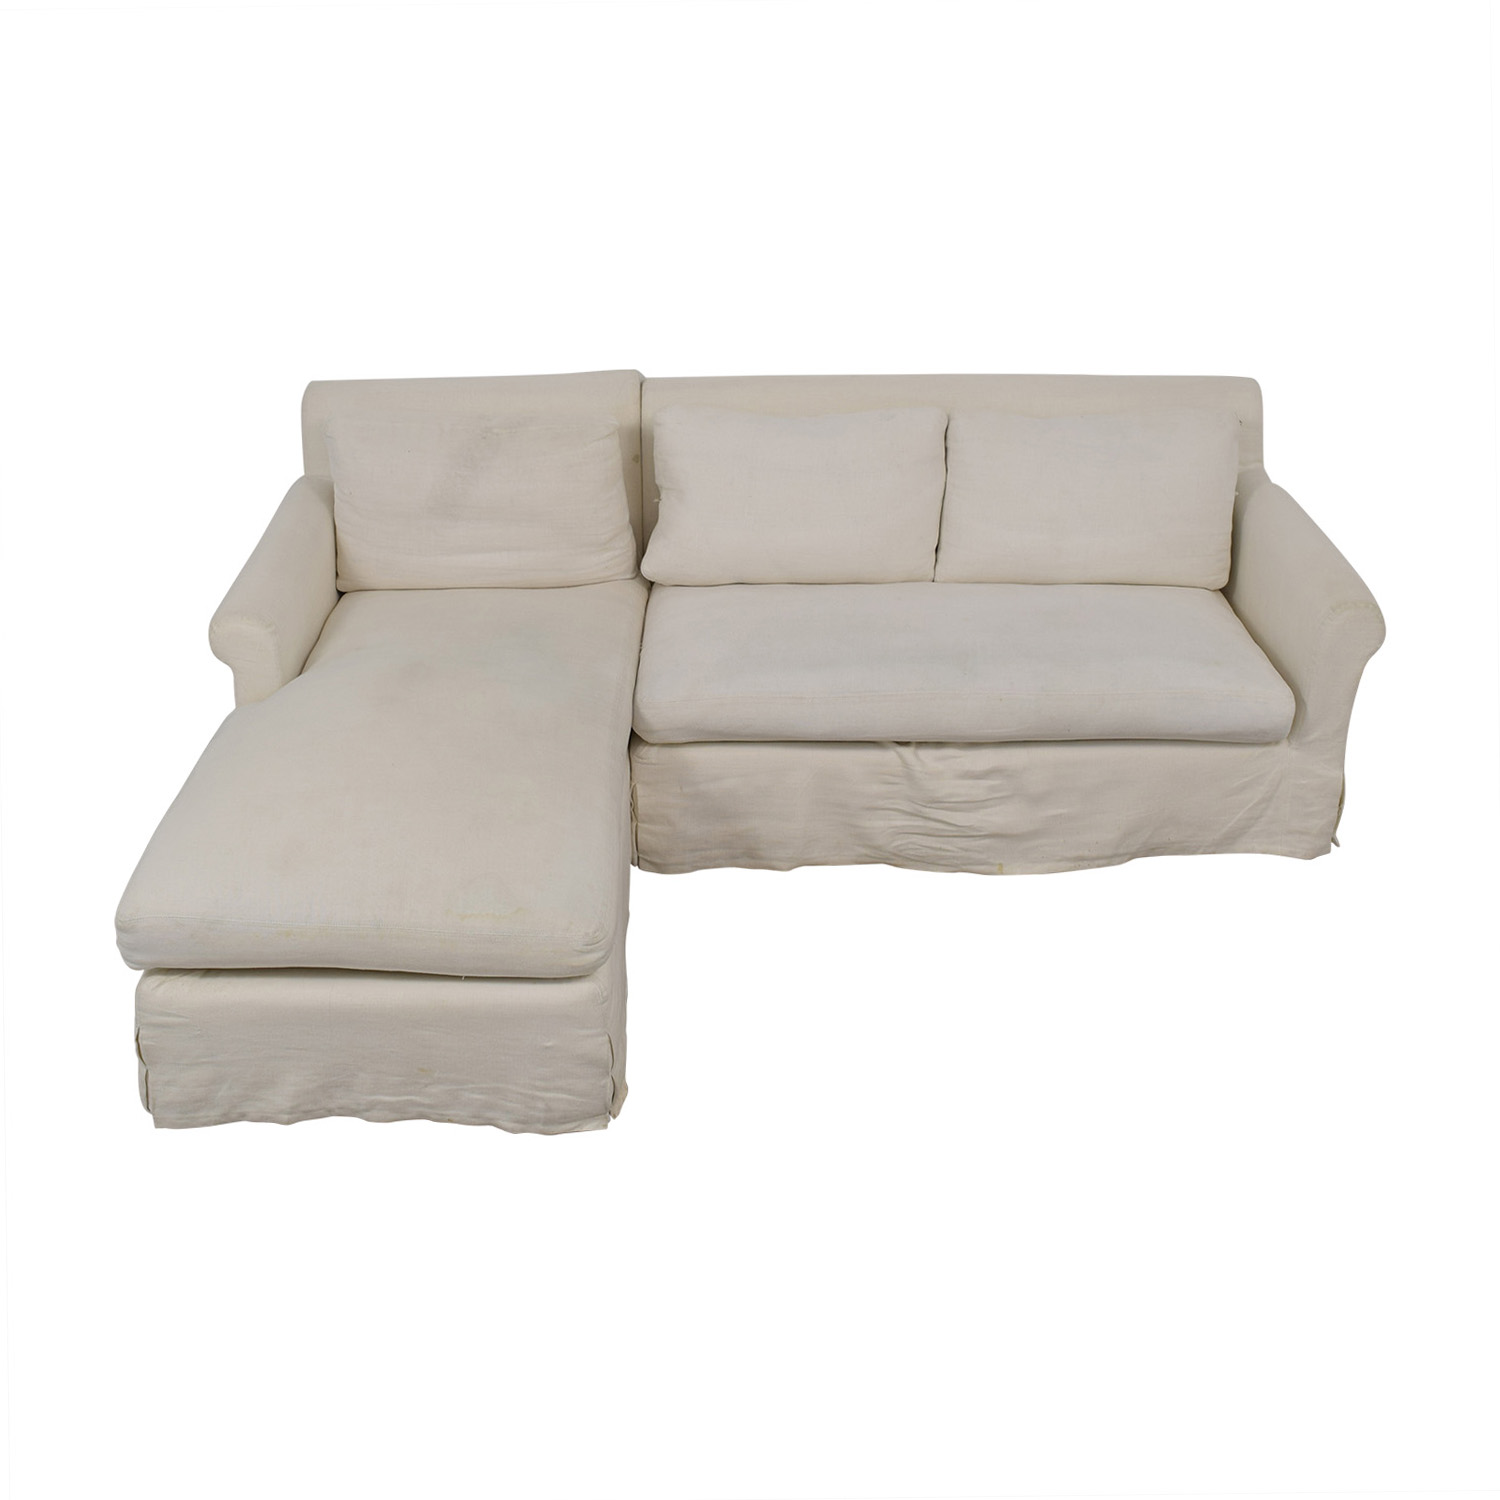 Restoration Hardware Restoration Hardware Petite Roll White Left Chaise Sectional second hand